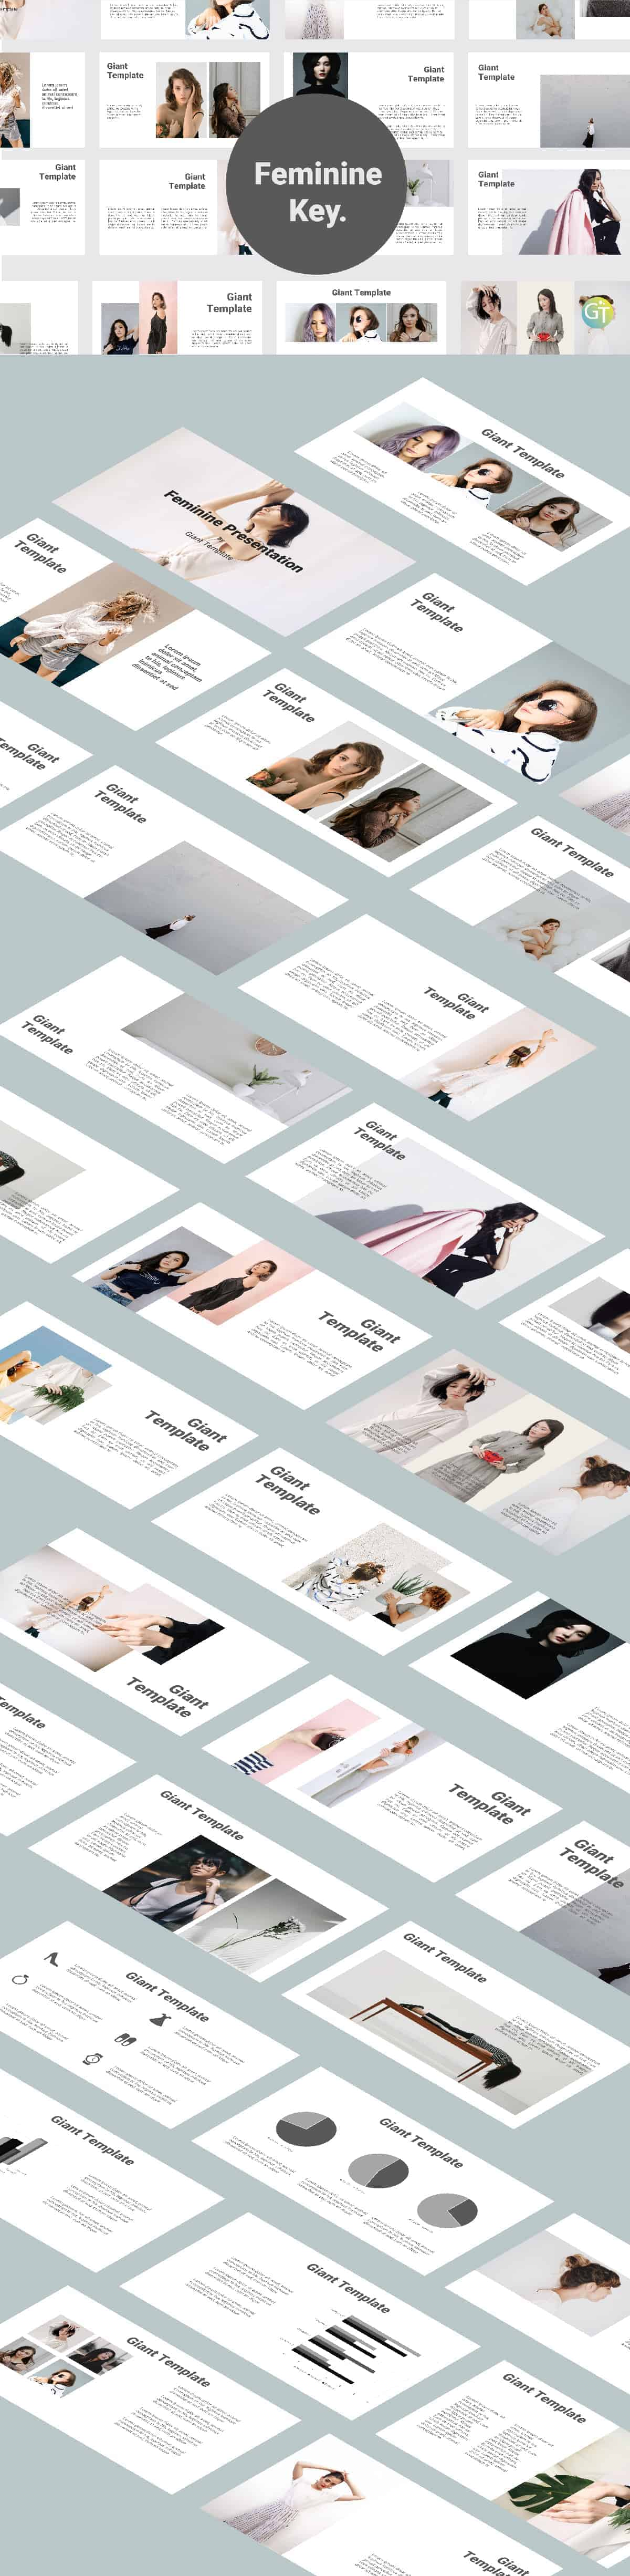 Feminine Keynote Template Free Download